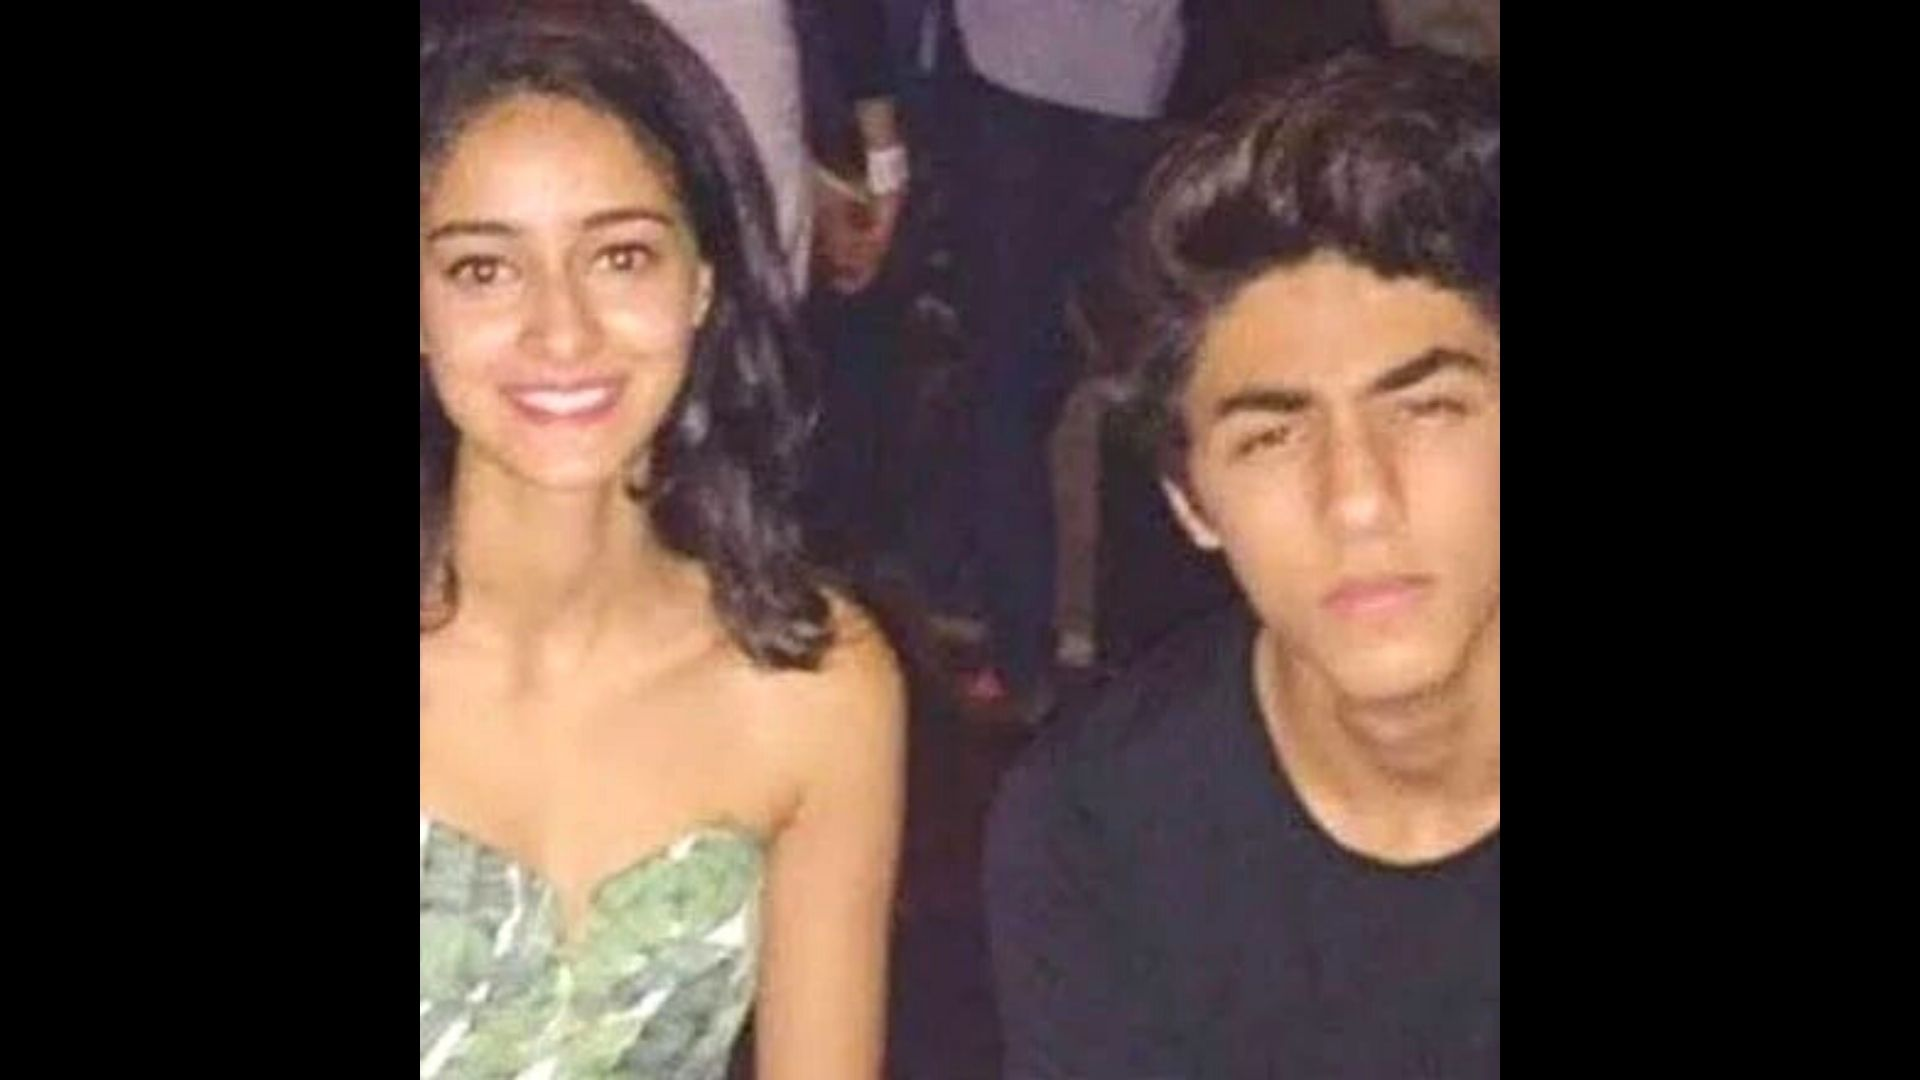 Ananya Panday Reacts To Reports Of Her Procuring And Supplying 'Ganja' To Aryan Khan – Deets Inside